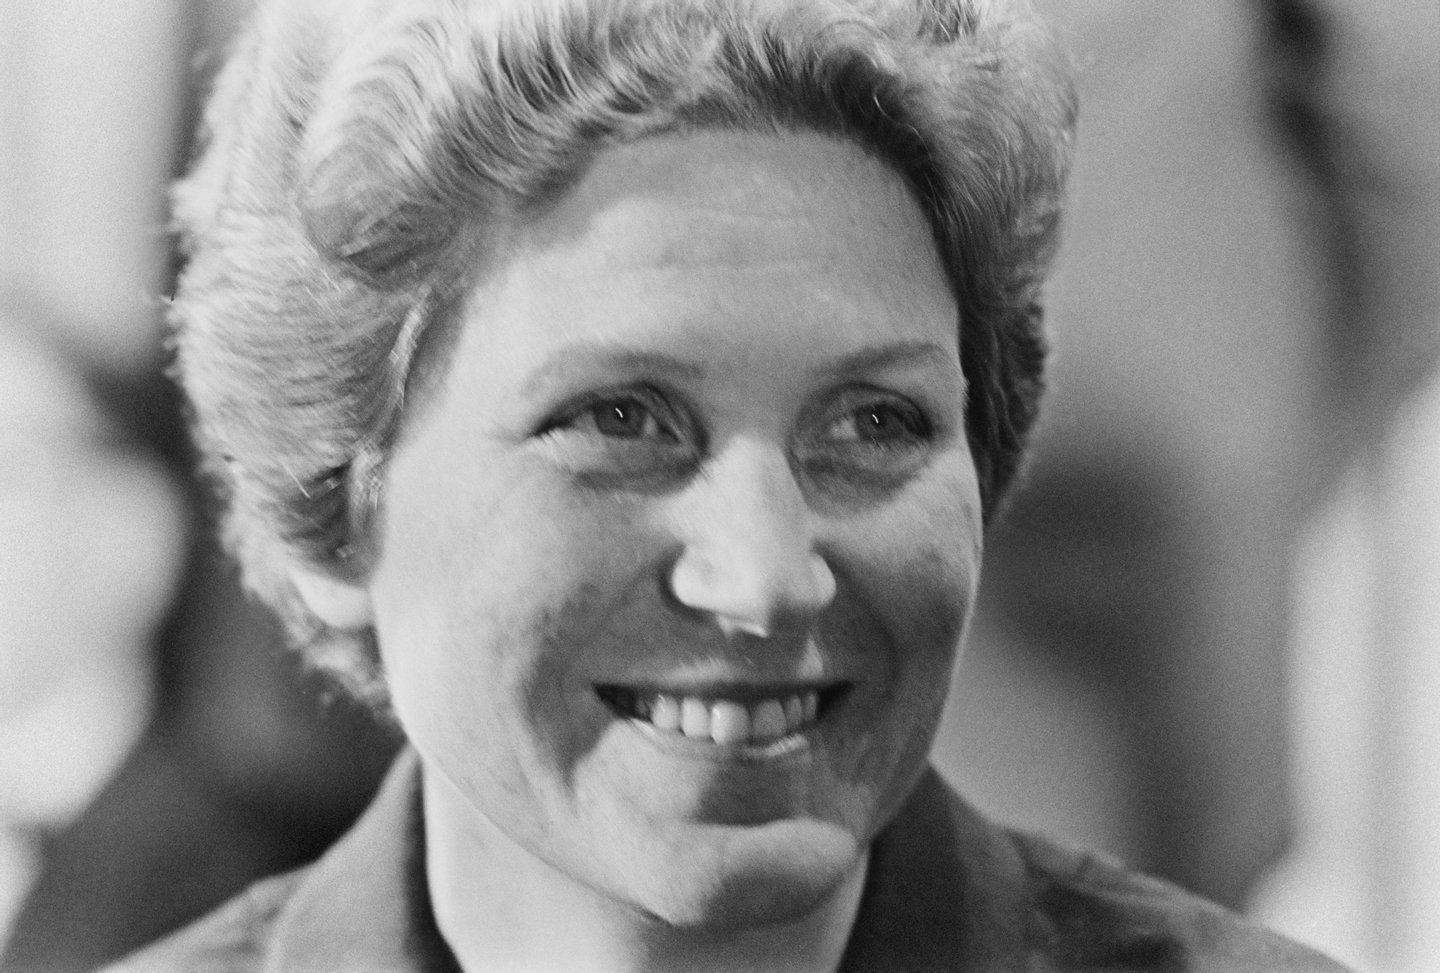 Svetlana Alliluyeva, the daughter of Joseph Stalin, at a press conference in New York City, USA, 1967. (Photo by Harry Benson/Express/Hulton Archive/Getty Images)